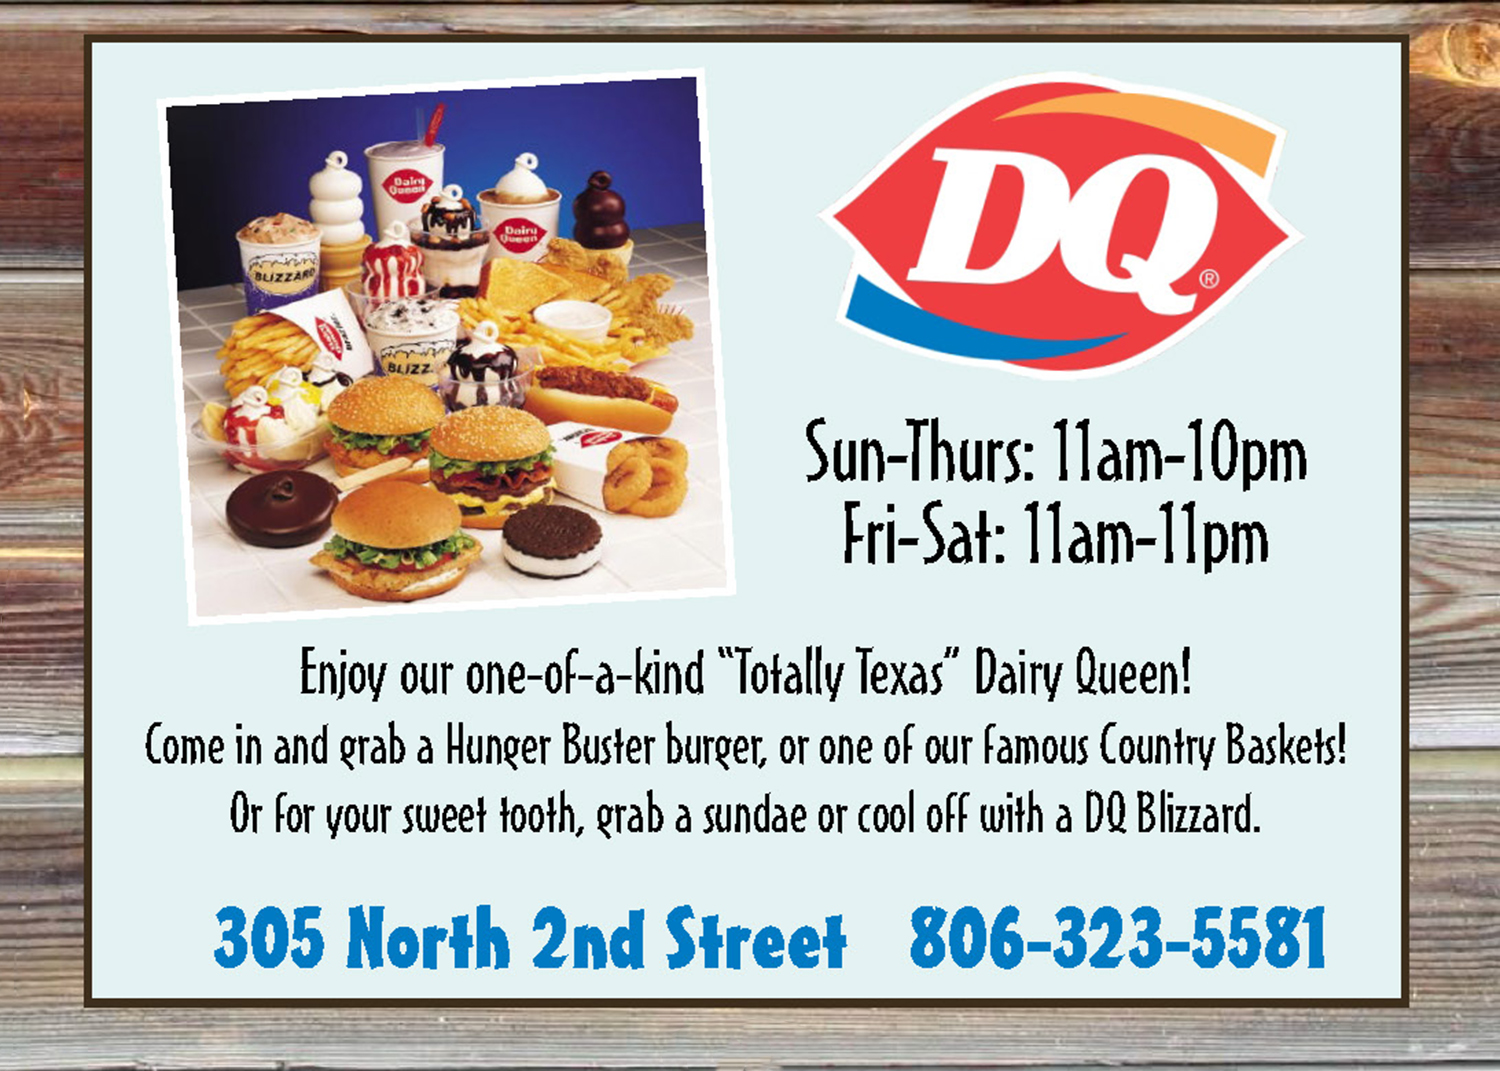 dining dq